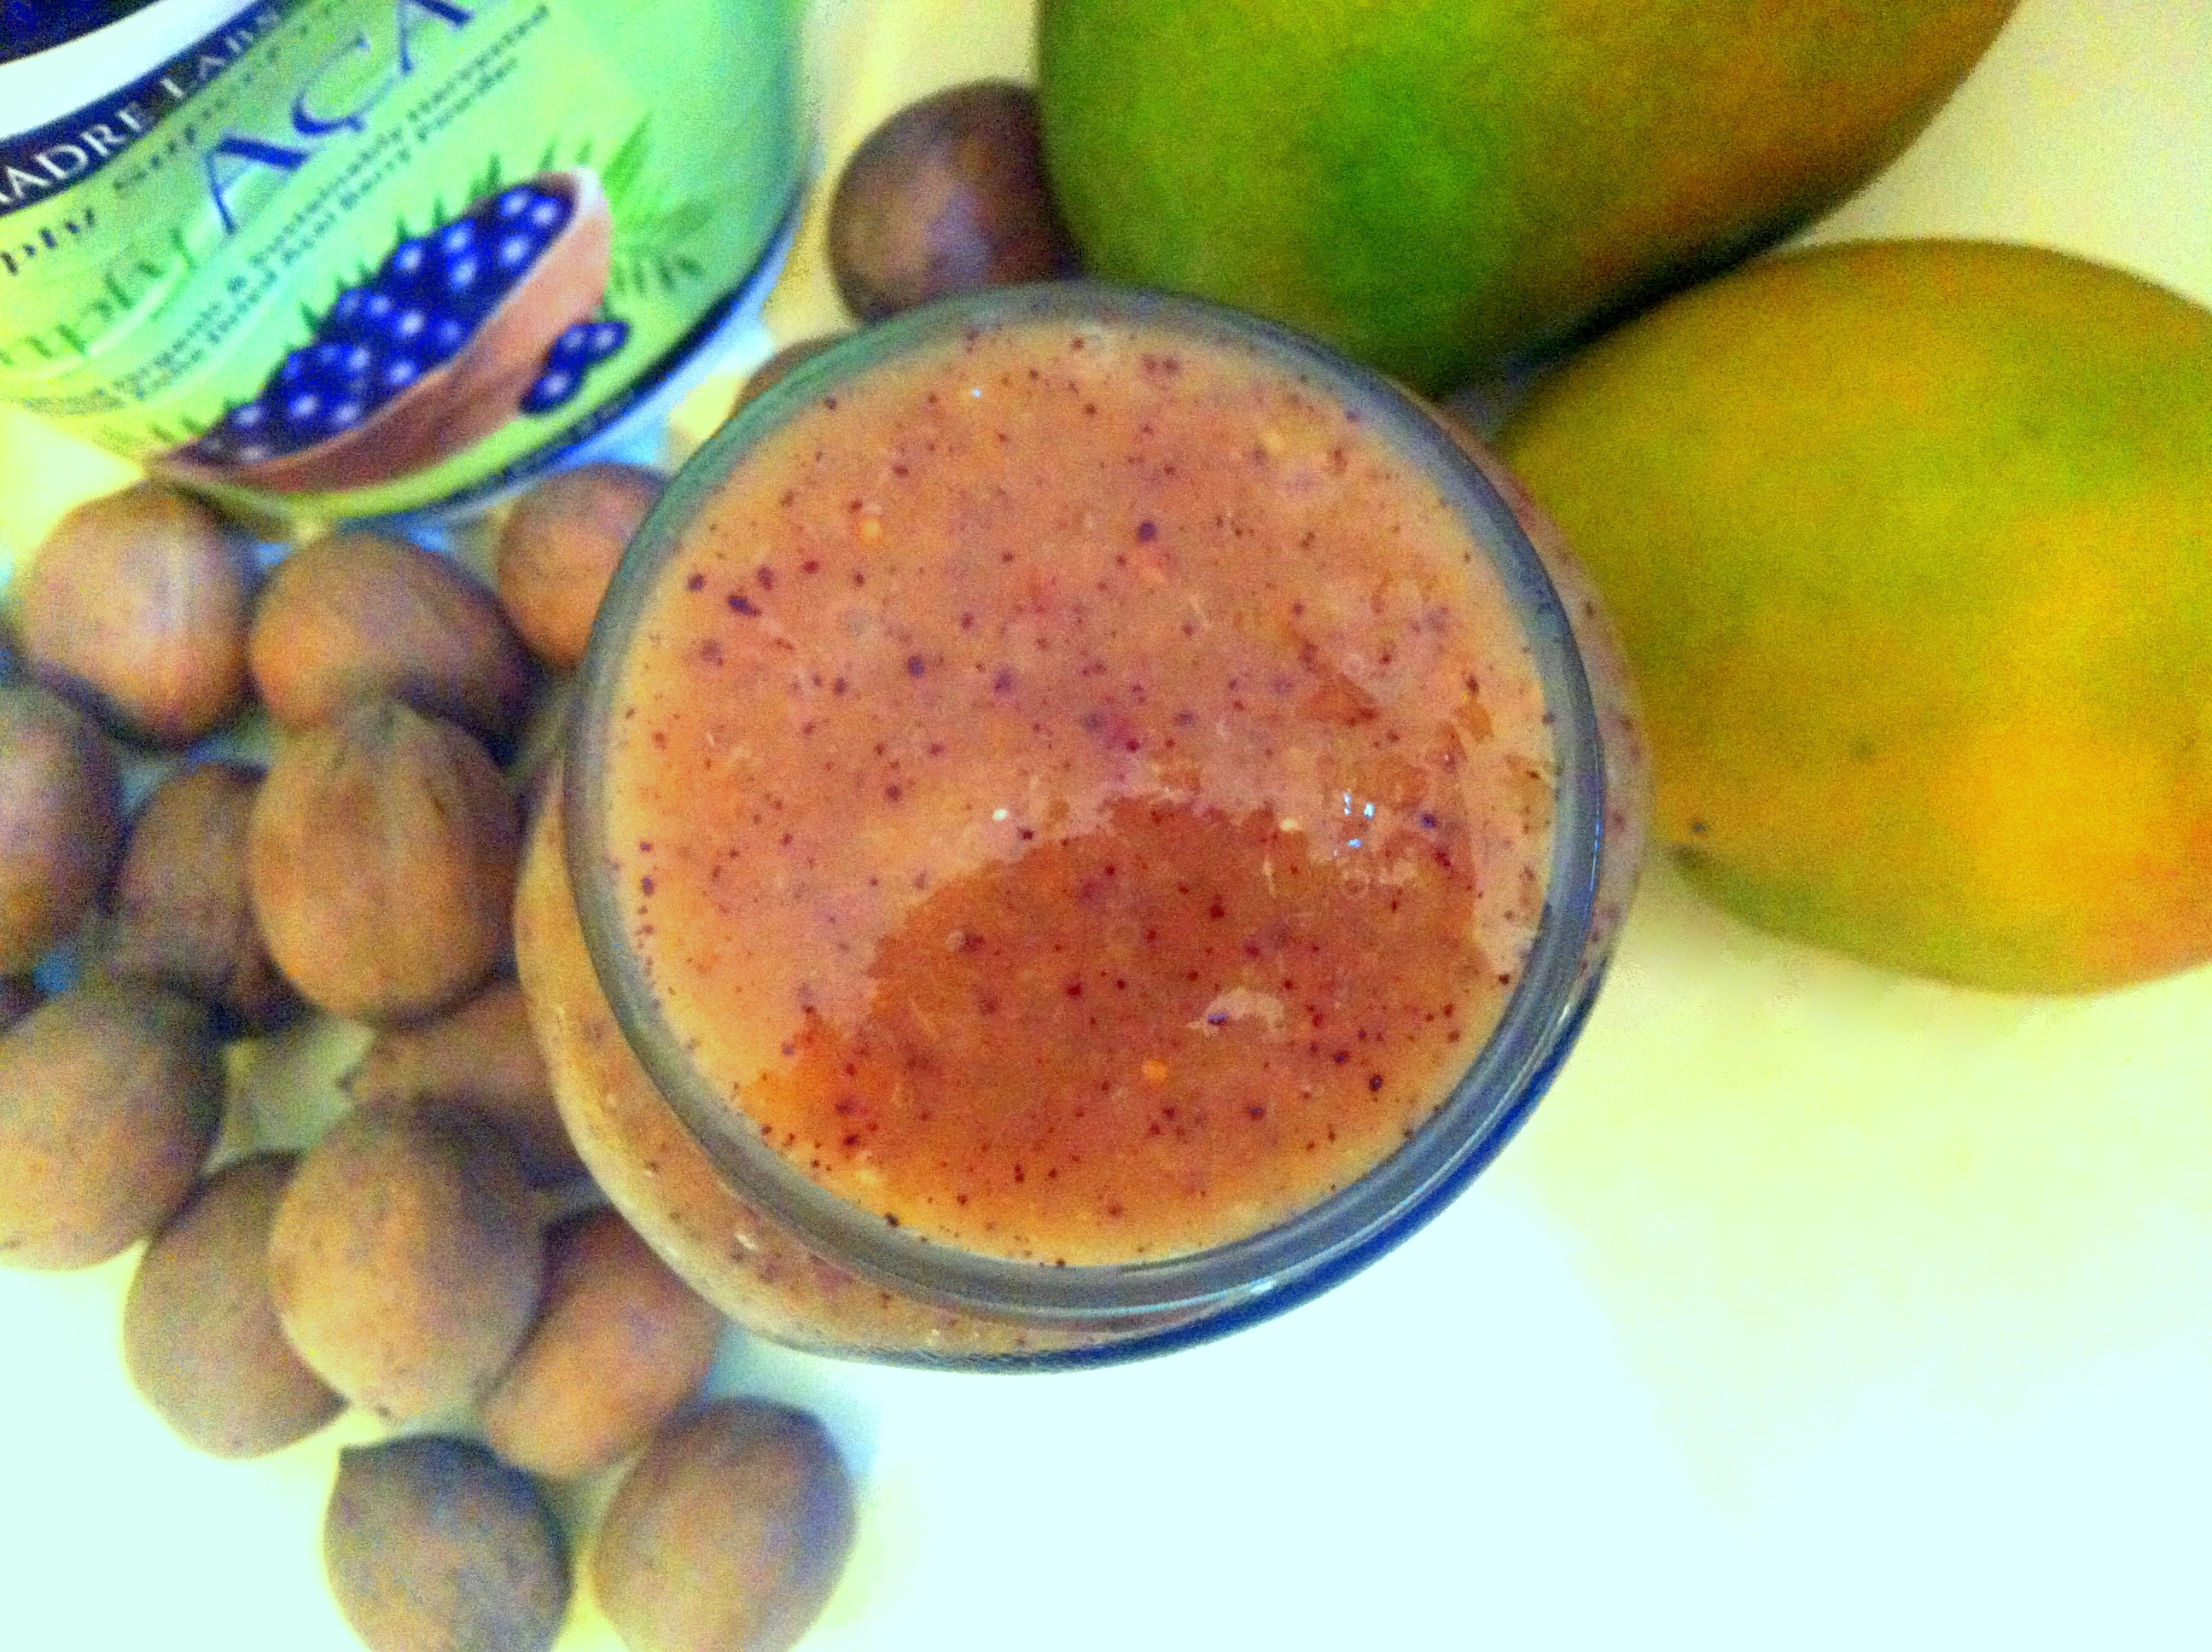 BANANALESS SMOOTHIE - Açai figs mango smoothie Vegan Recipes VEGAN SLAUGHTERER Yaeli Shochat